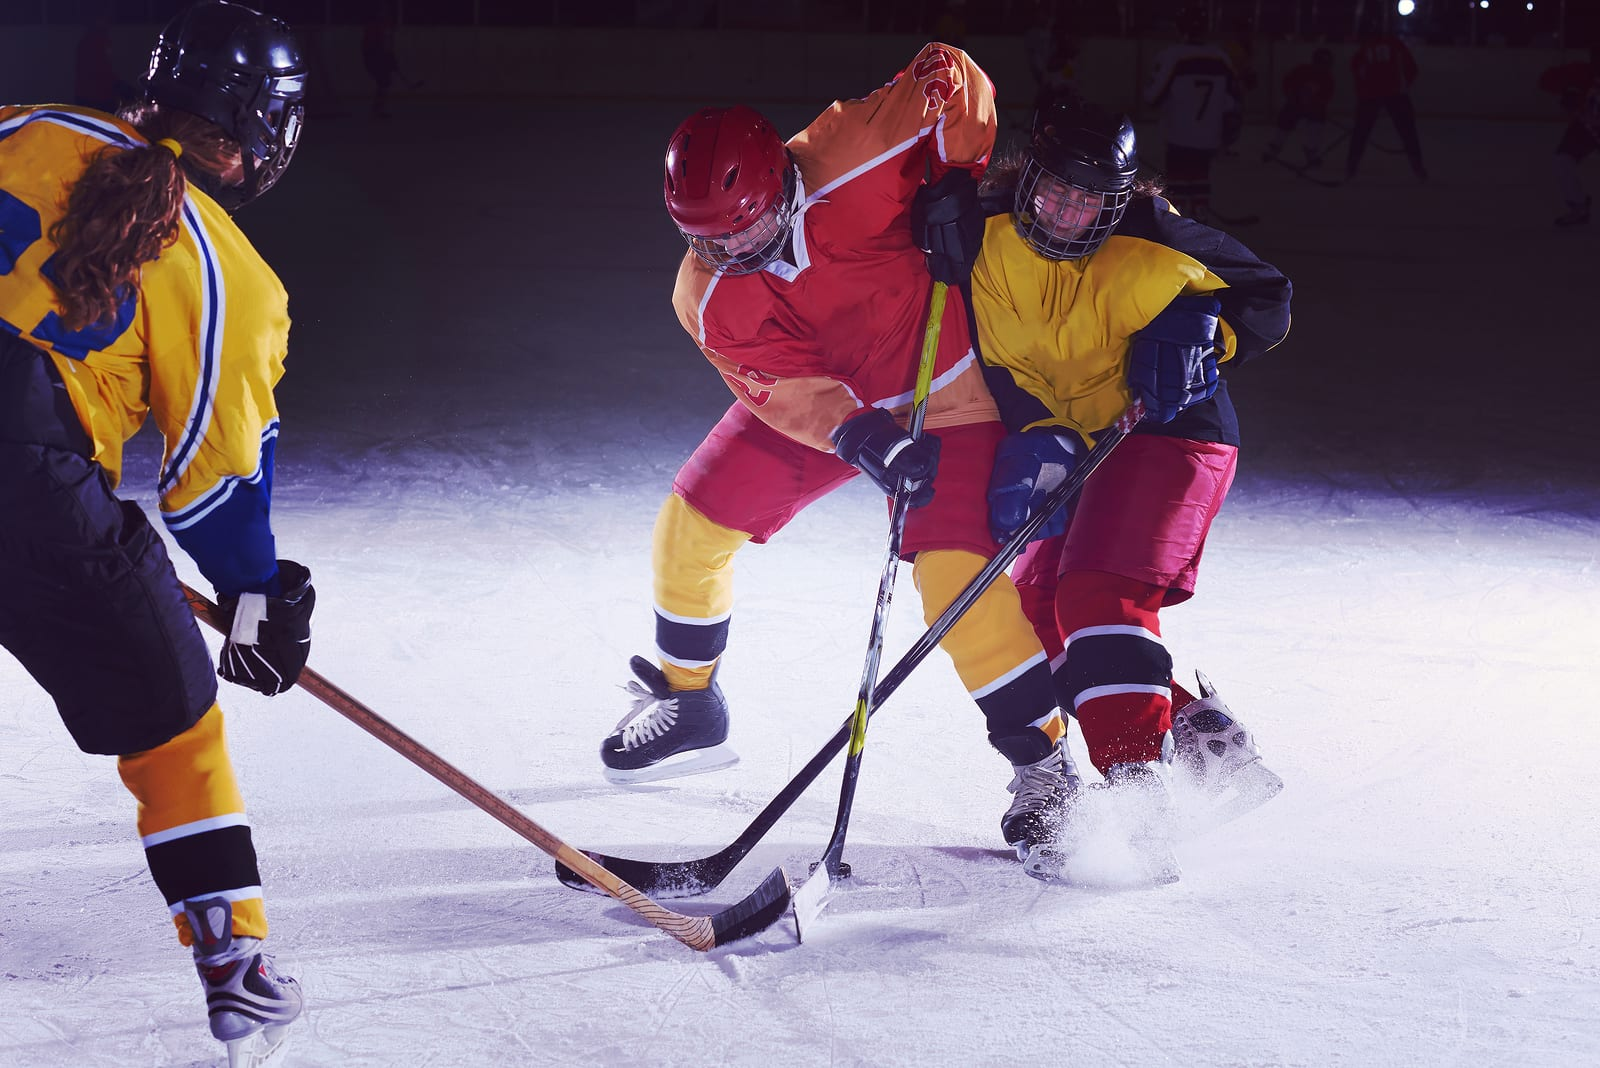 ice hockey sport players in action